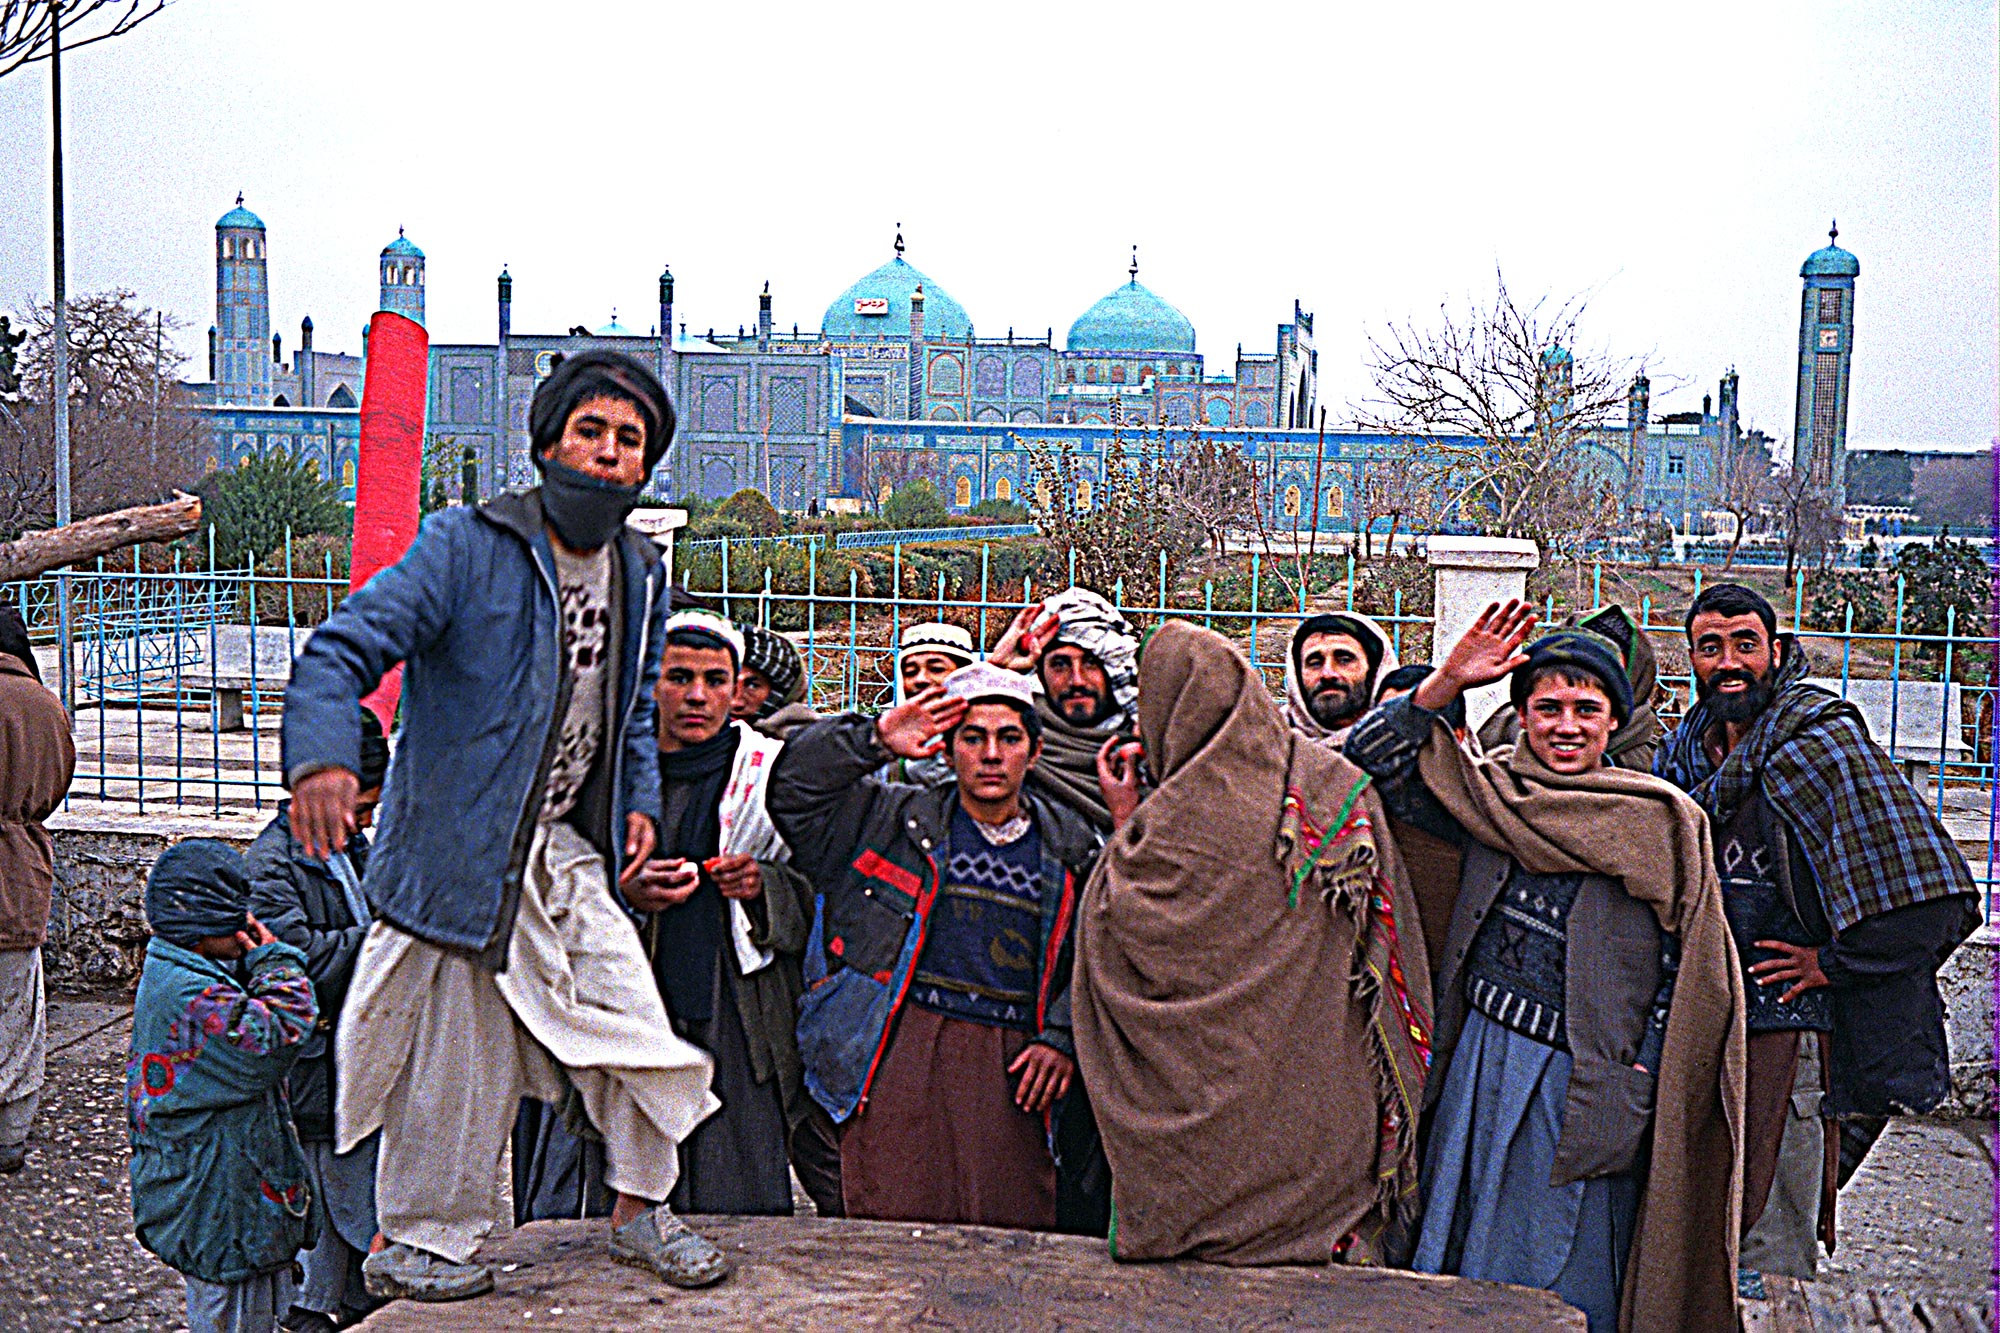 afghanistan essay Editor's note: the following essay is part of our series we are calling voices from the new afghanistan it was written by an impressive young afghan man, mohammad sajid arghandaiwal, living in kabul and working with pax populi tutoring services to advance his english language skills.